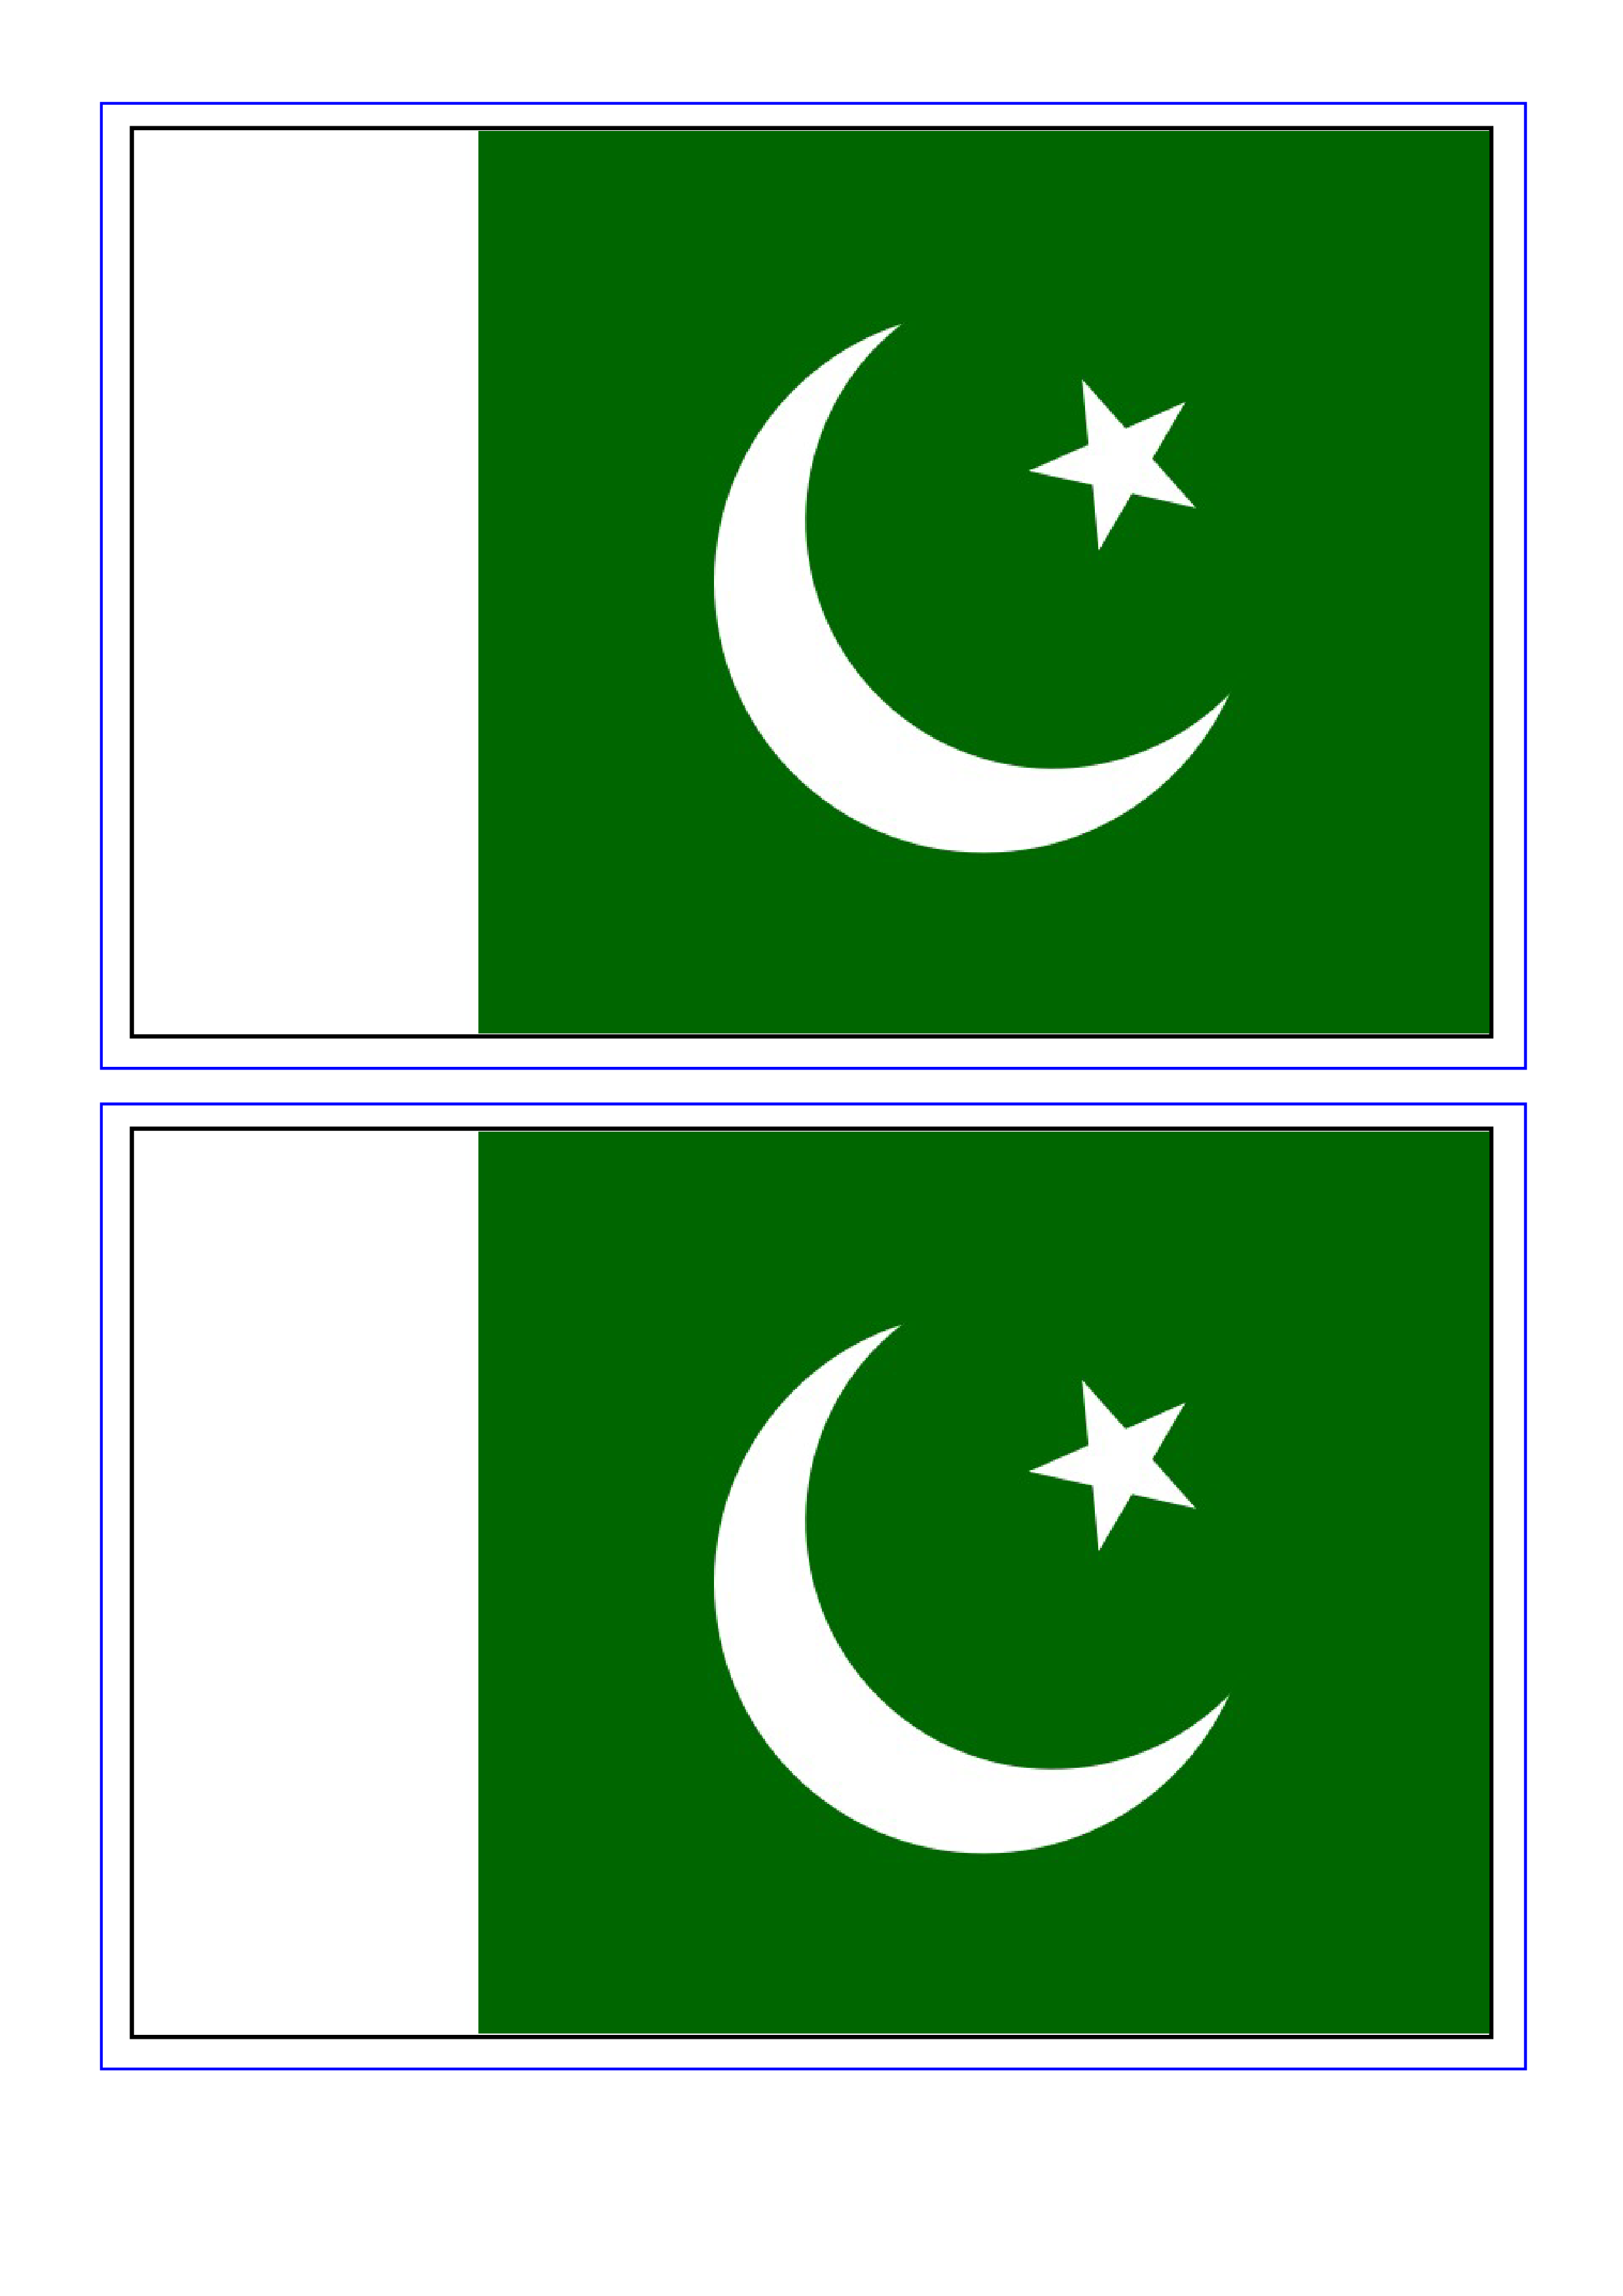 Pakistan Flag Download This Free Printable Pakistan Template A4 Flag A5 Flag 8 And 21 Flags On One A4page Easy To U Pakistan Flag Flag Printable Templates